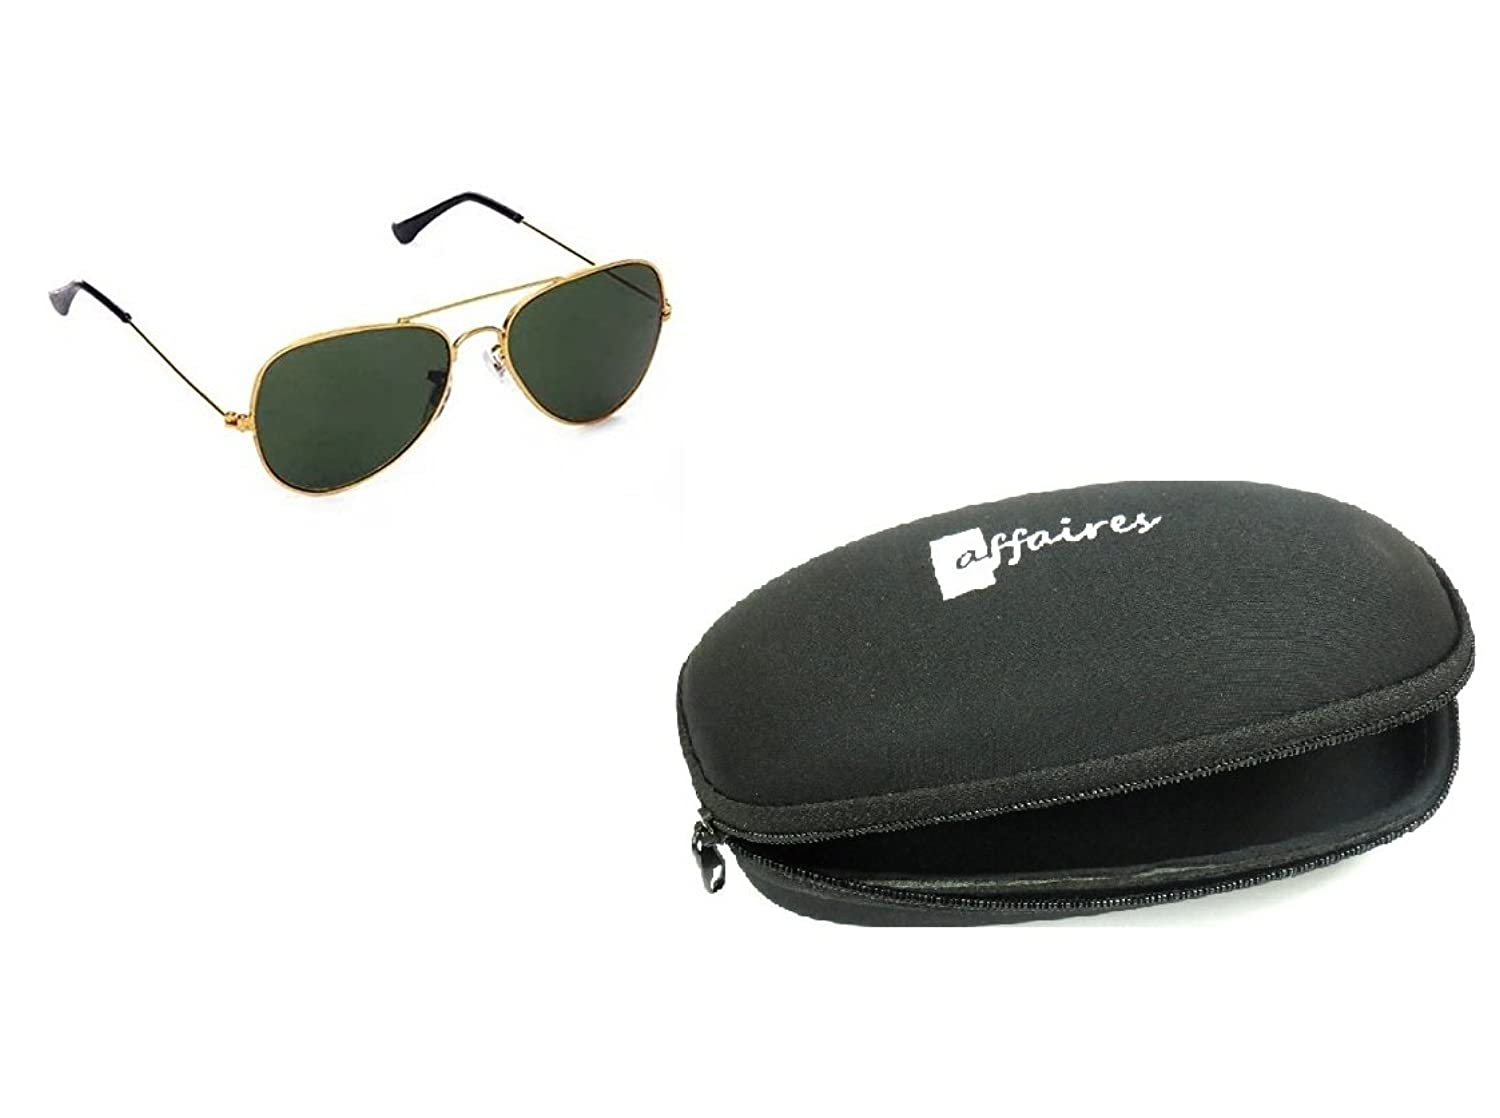 Affaires A-344 Aviator Sunglasses Golden-green Rb Style